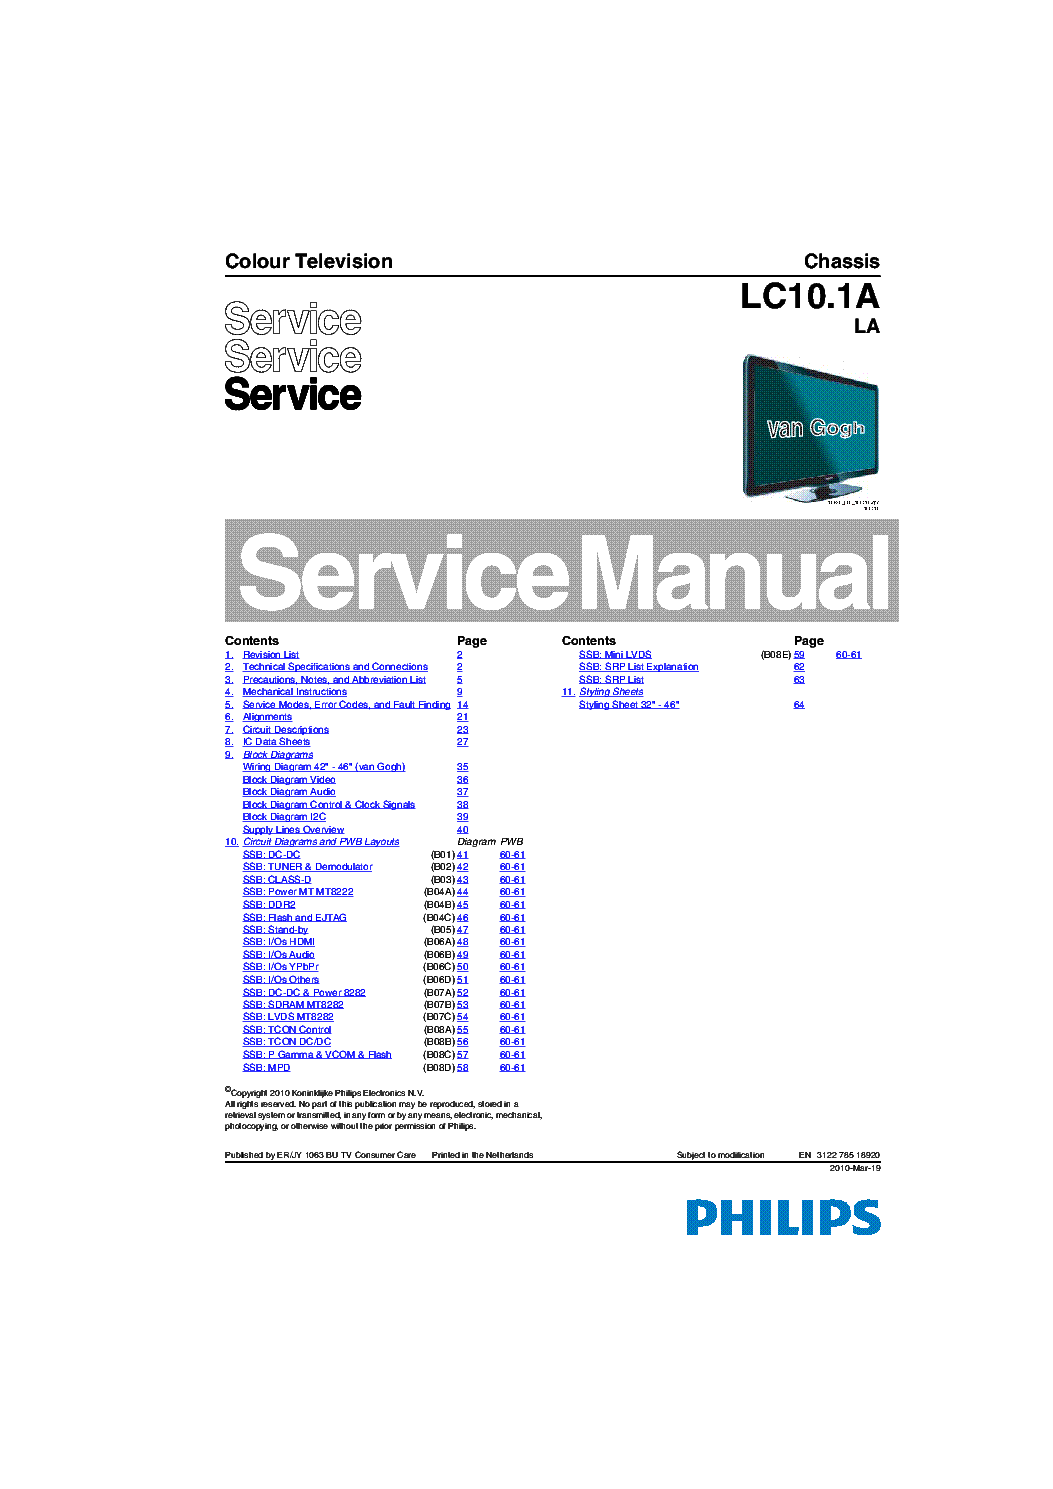 PHILIPS CHASSIS LC10.1A LA 2010-03-19 SM service manual (1st